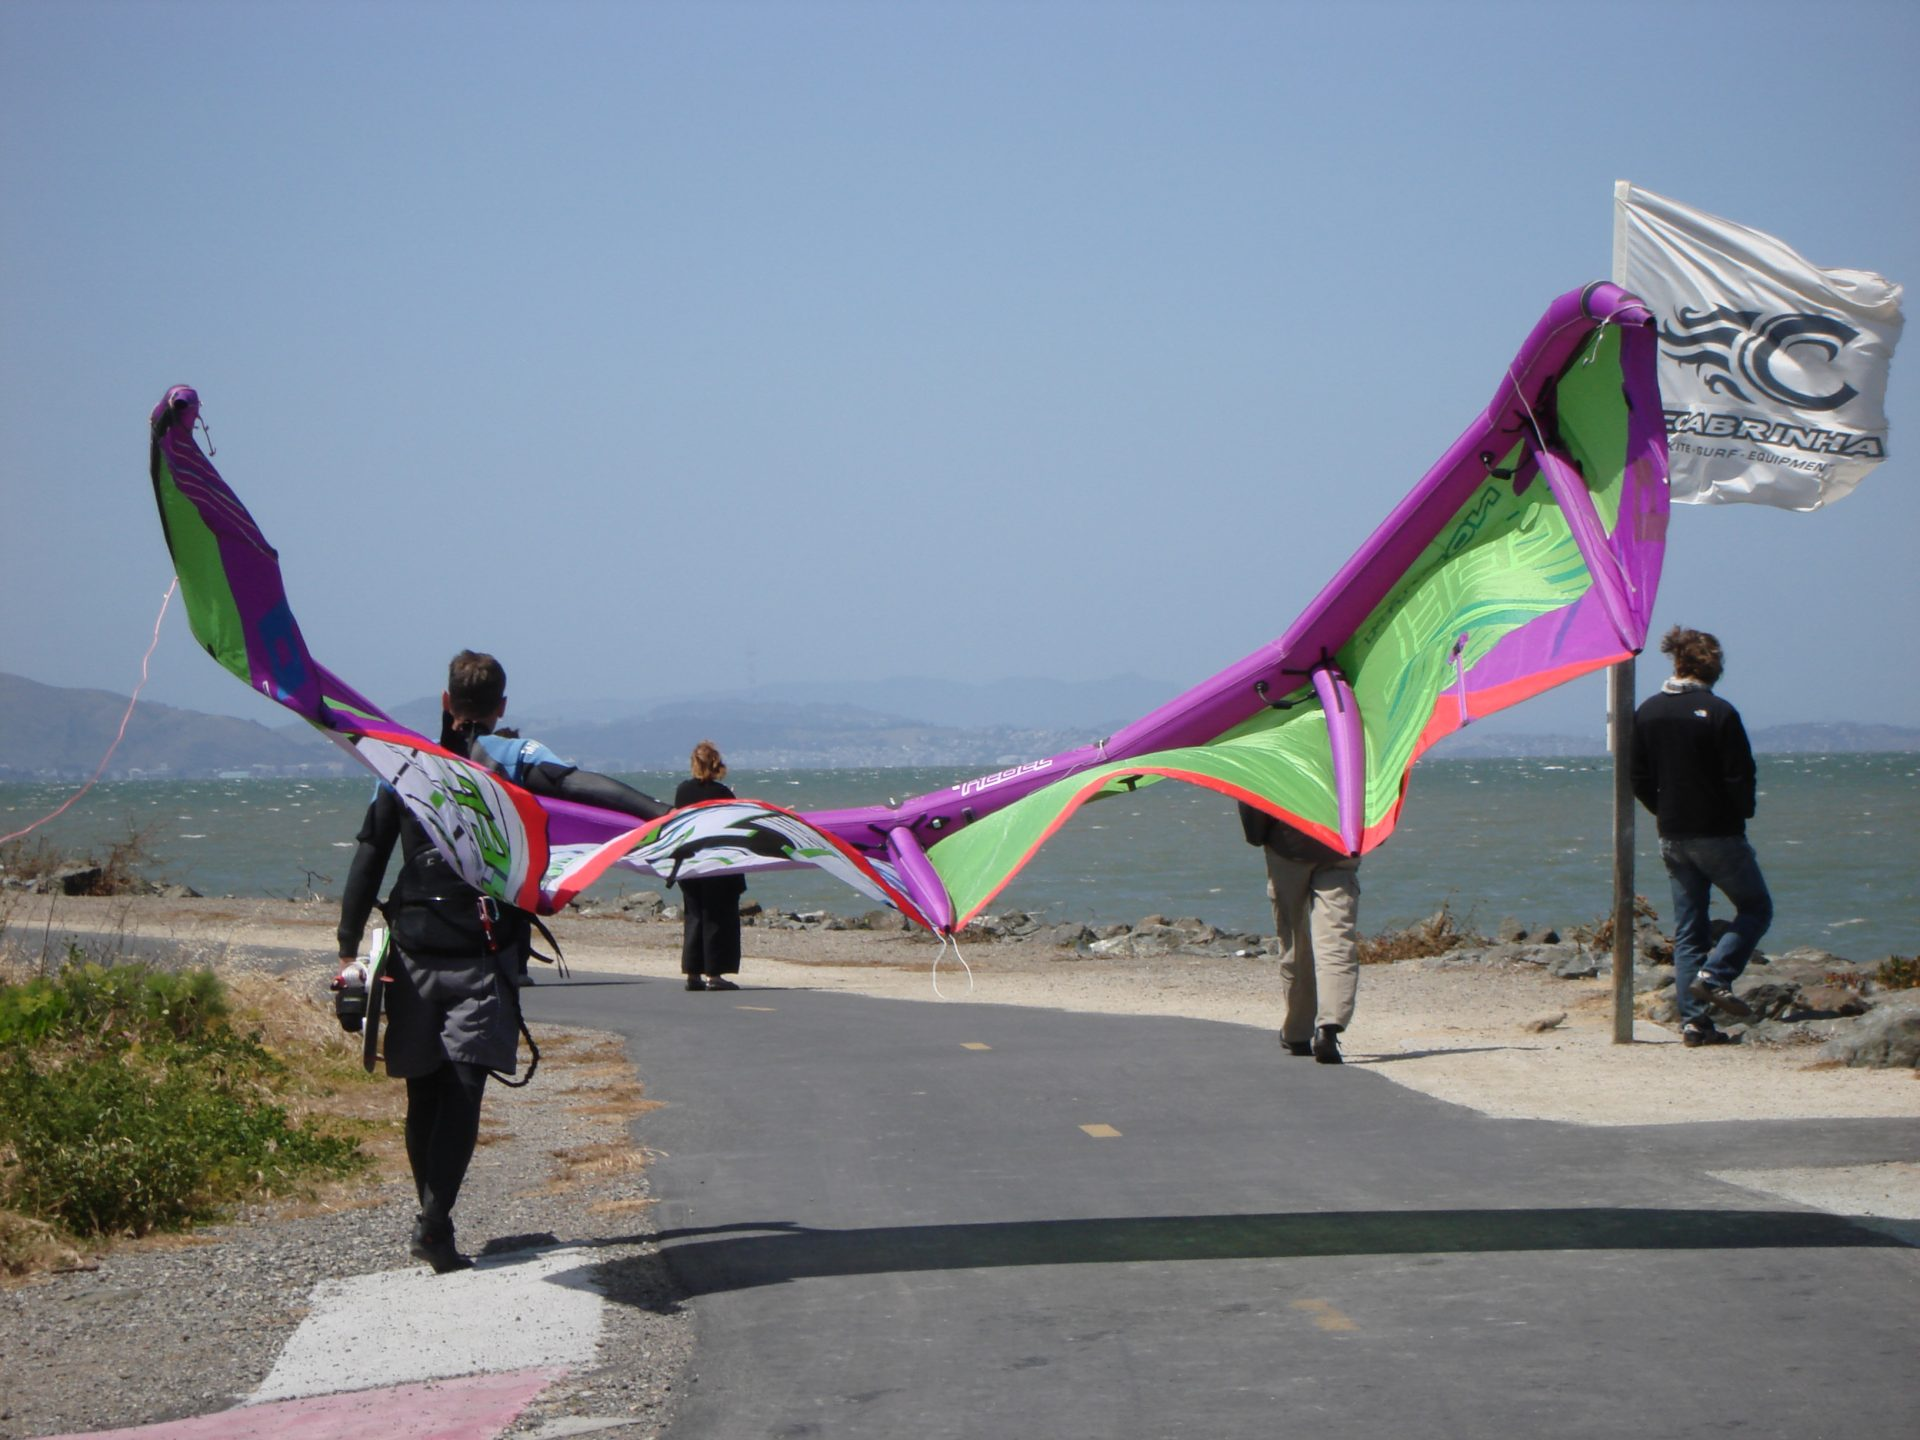 person carrying large, colorful kite for kiteboarding